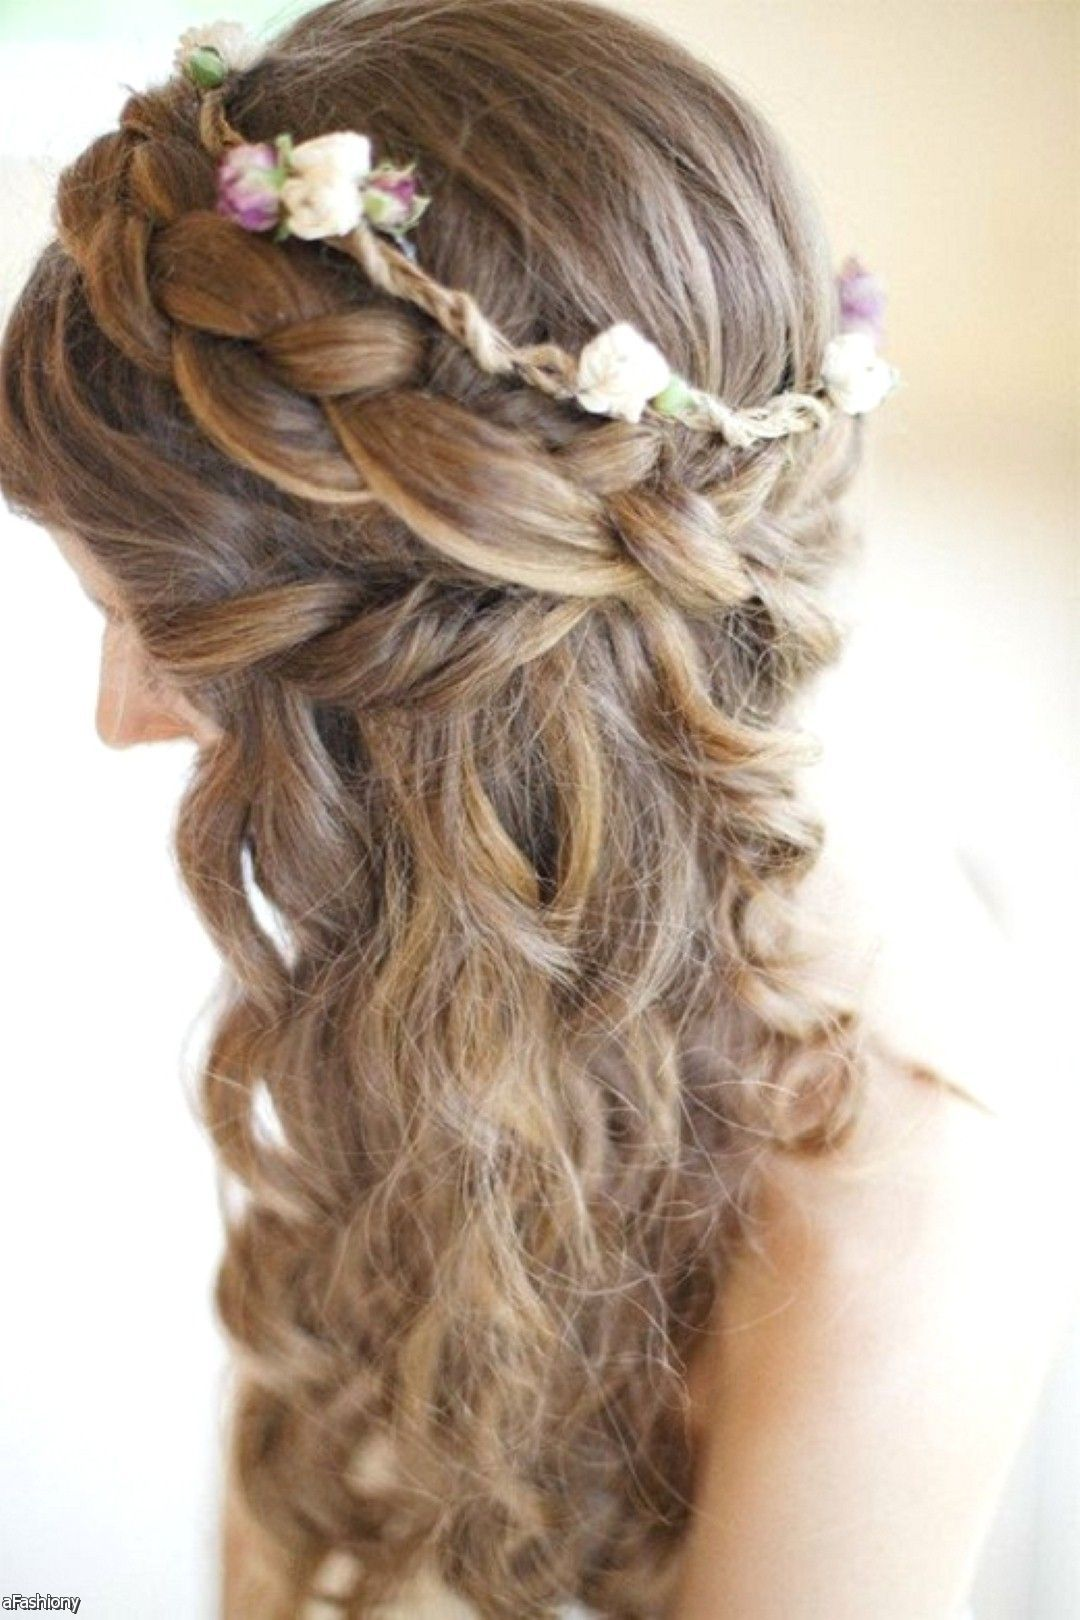 Long hairstyles curly prom 3 - 40 Most Charming Prom Hairstyles For 2016